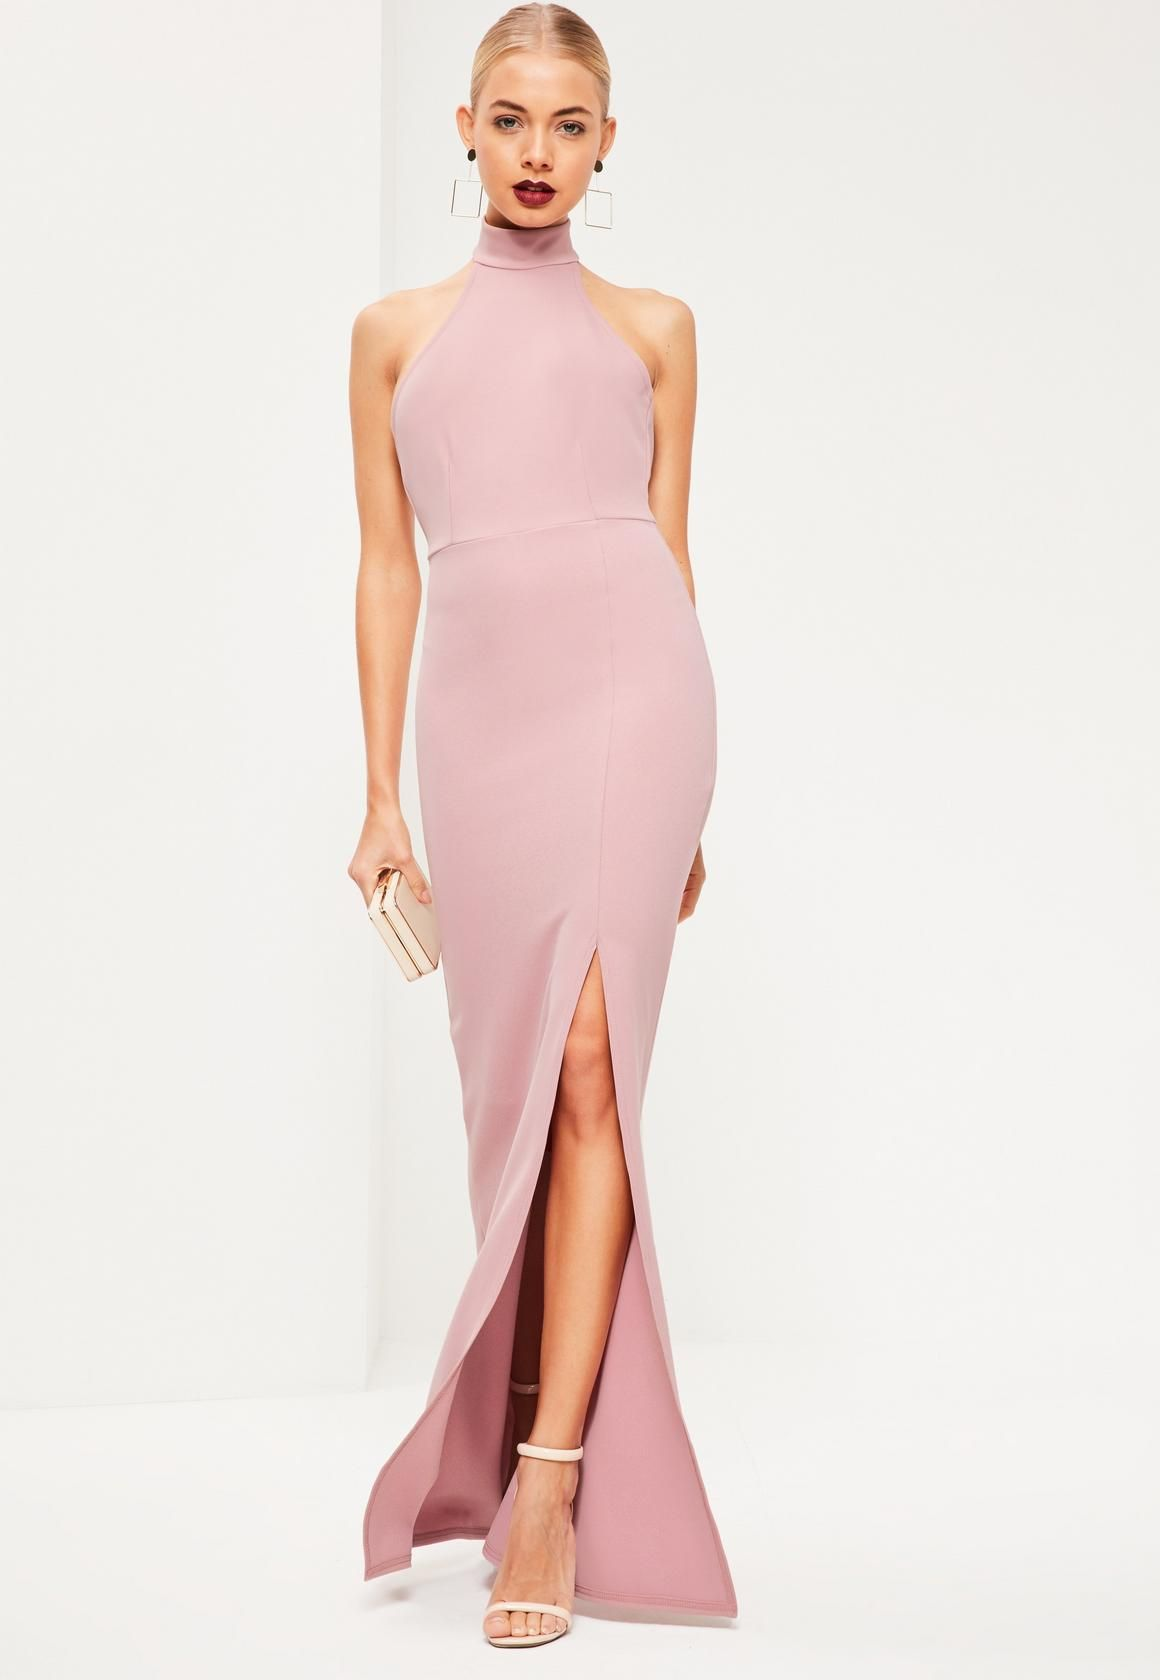 Missguided Pink Choker Maxi Dress